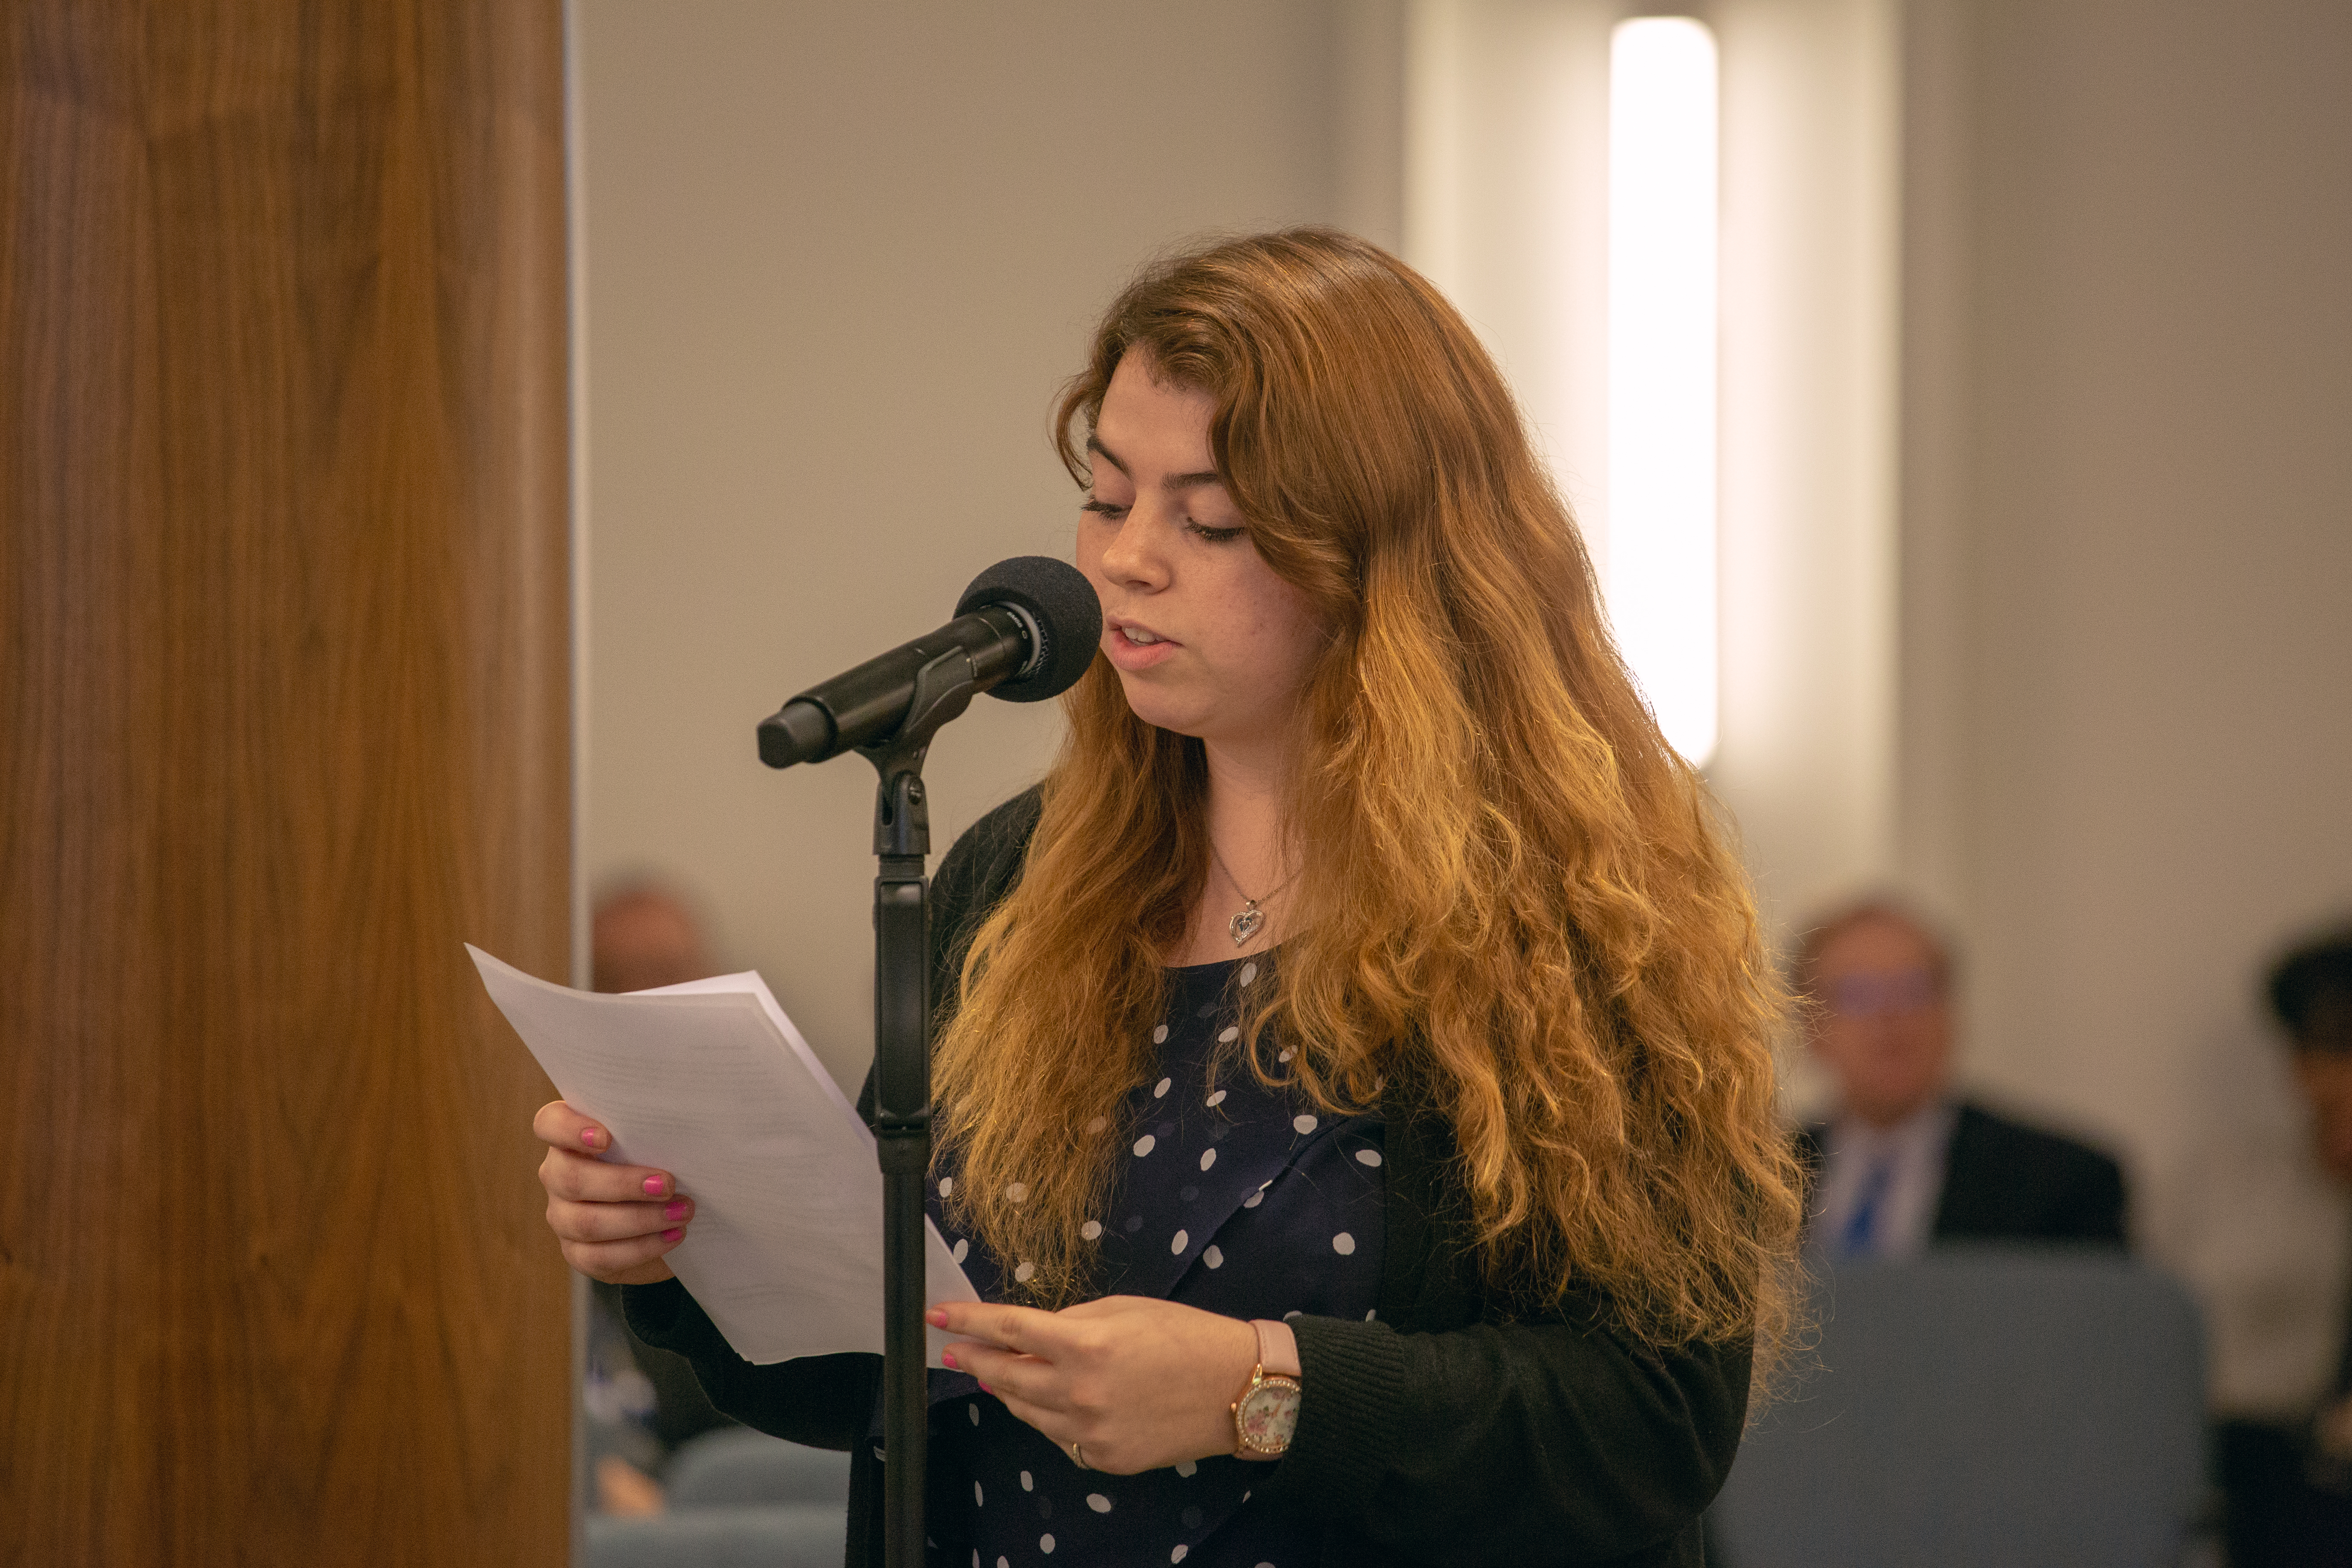 Ashton Hardin, student body president of La Sierra University, reads statement drafted by her colleagues.